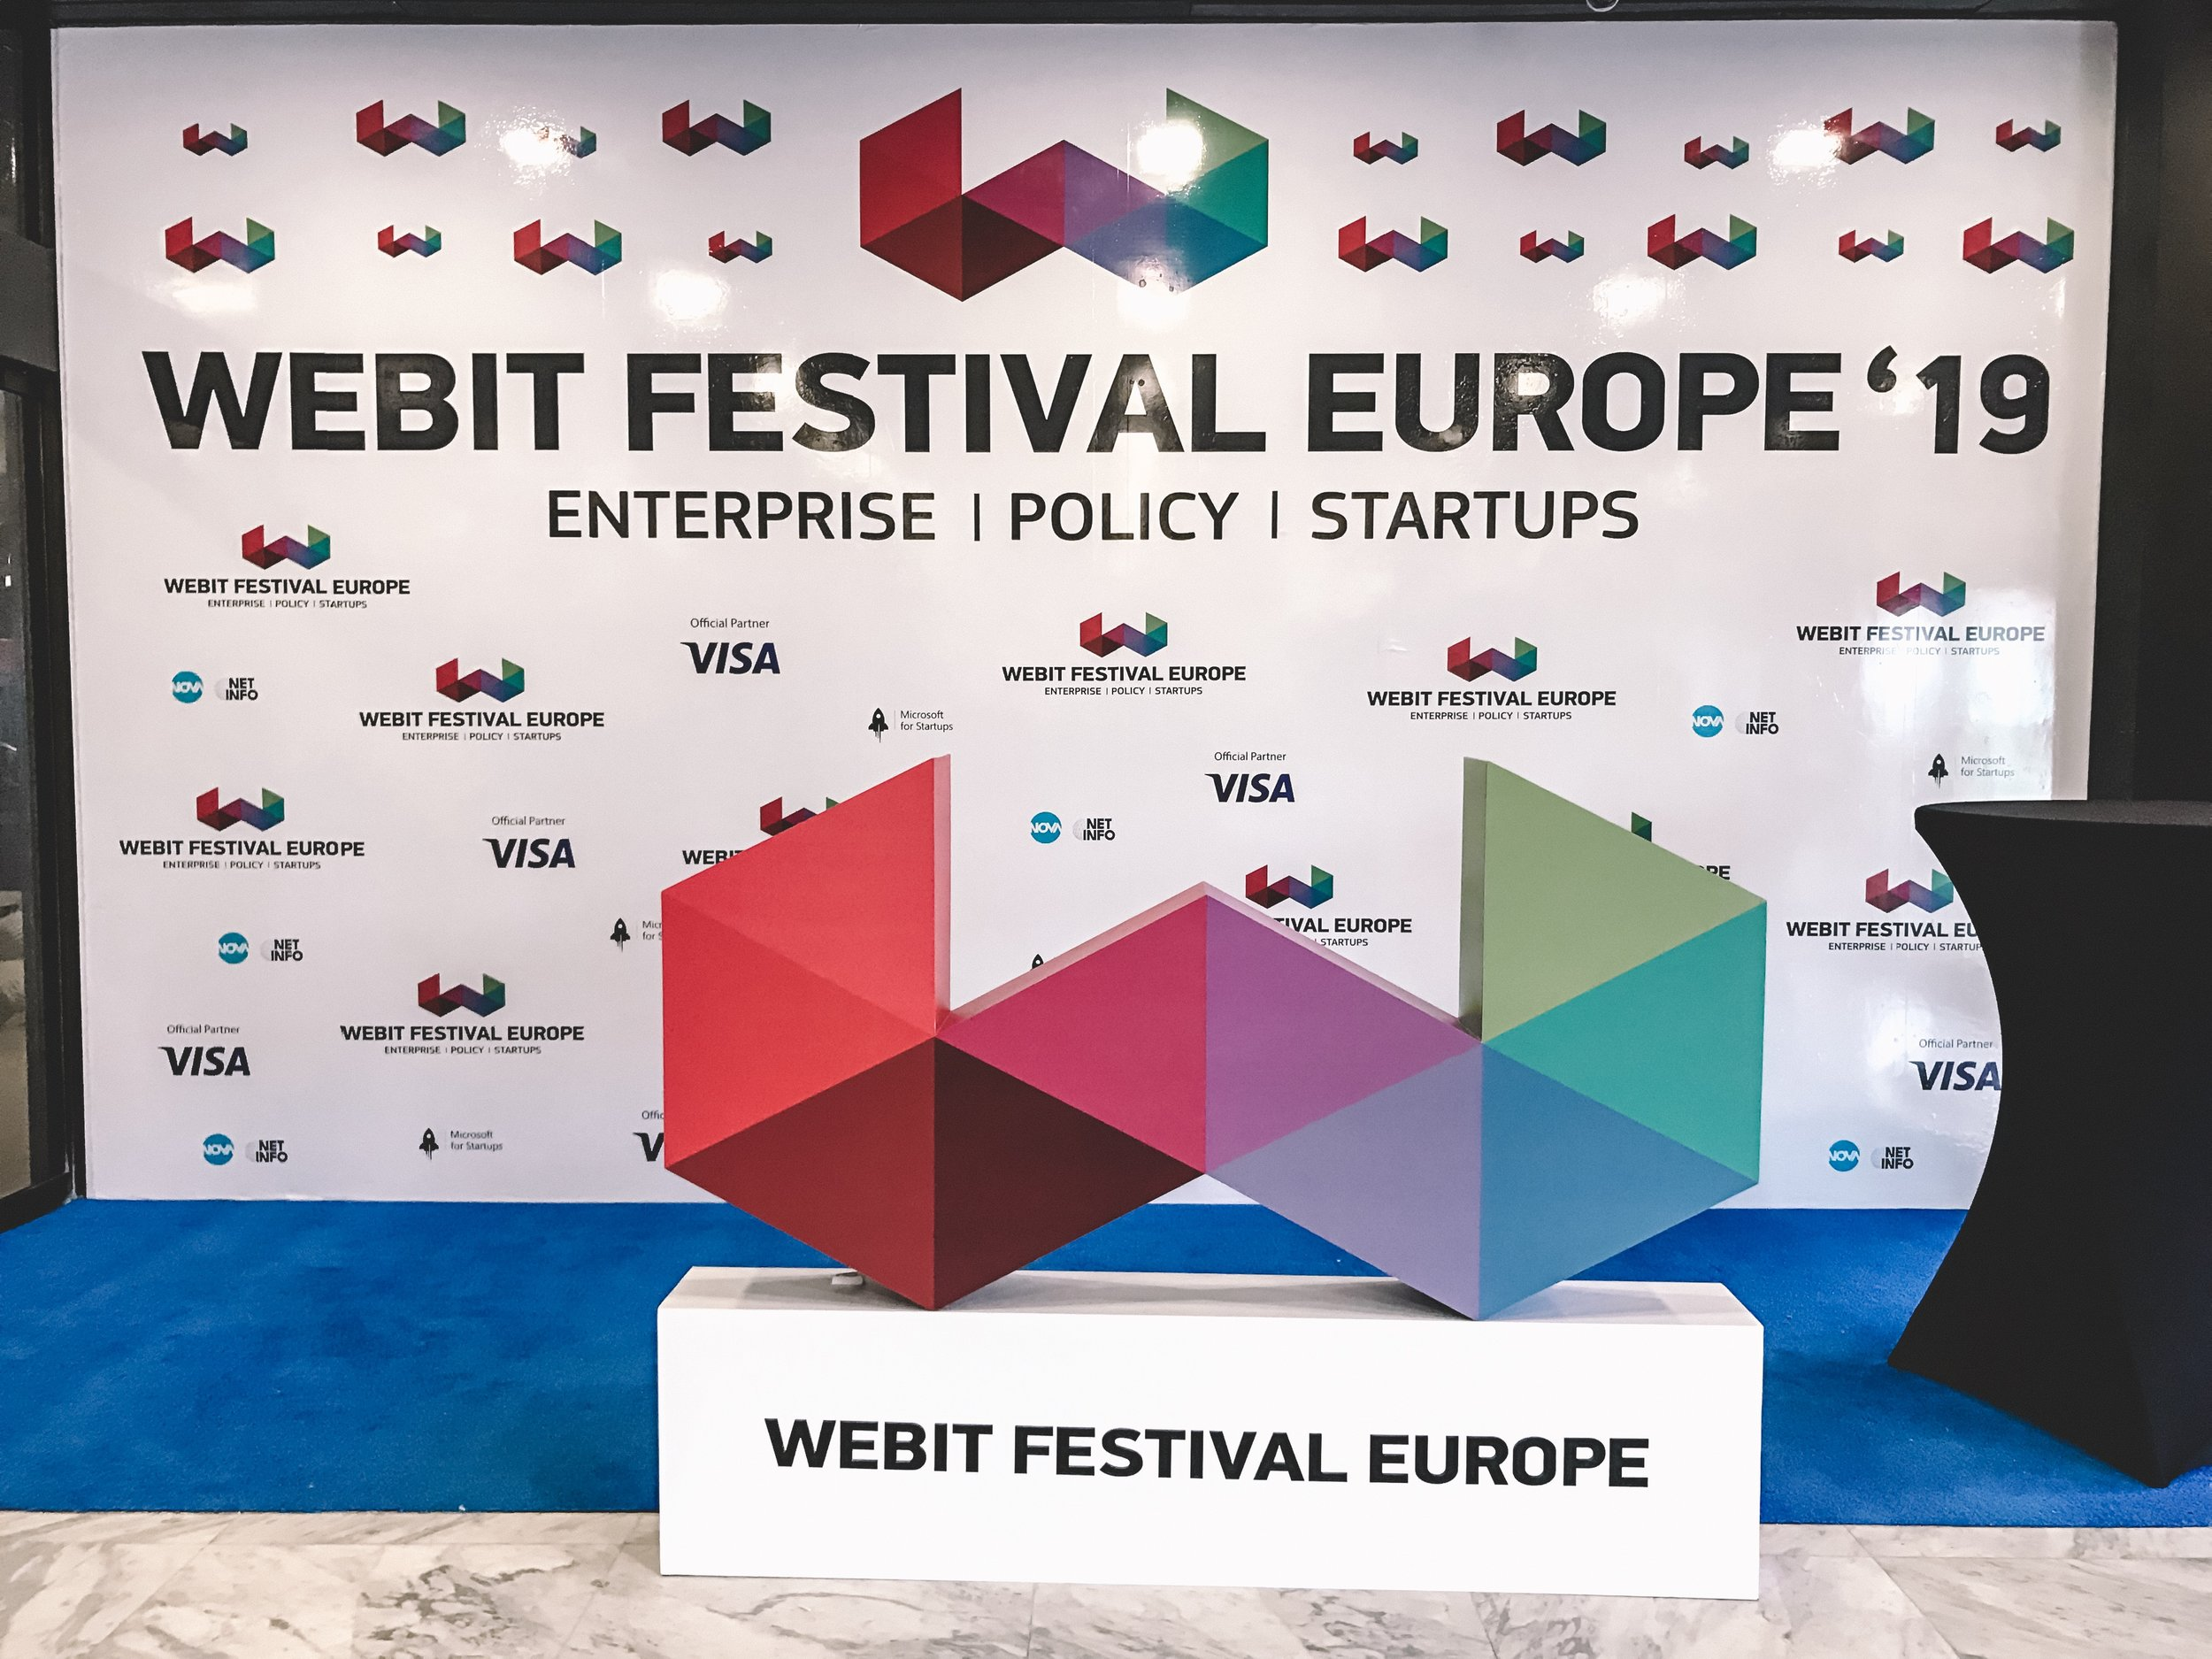 webit_festival_europe_2019_digital_technologies